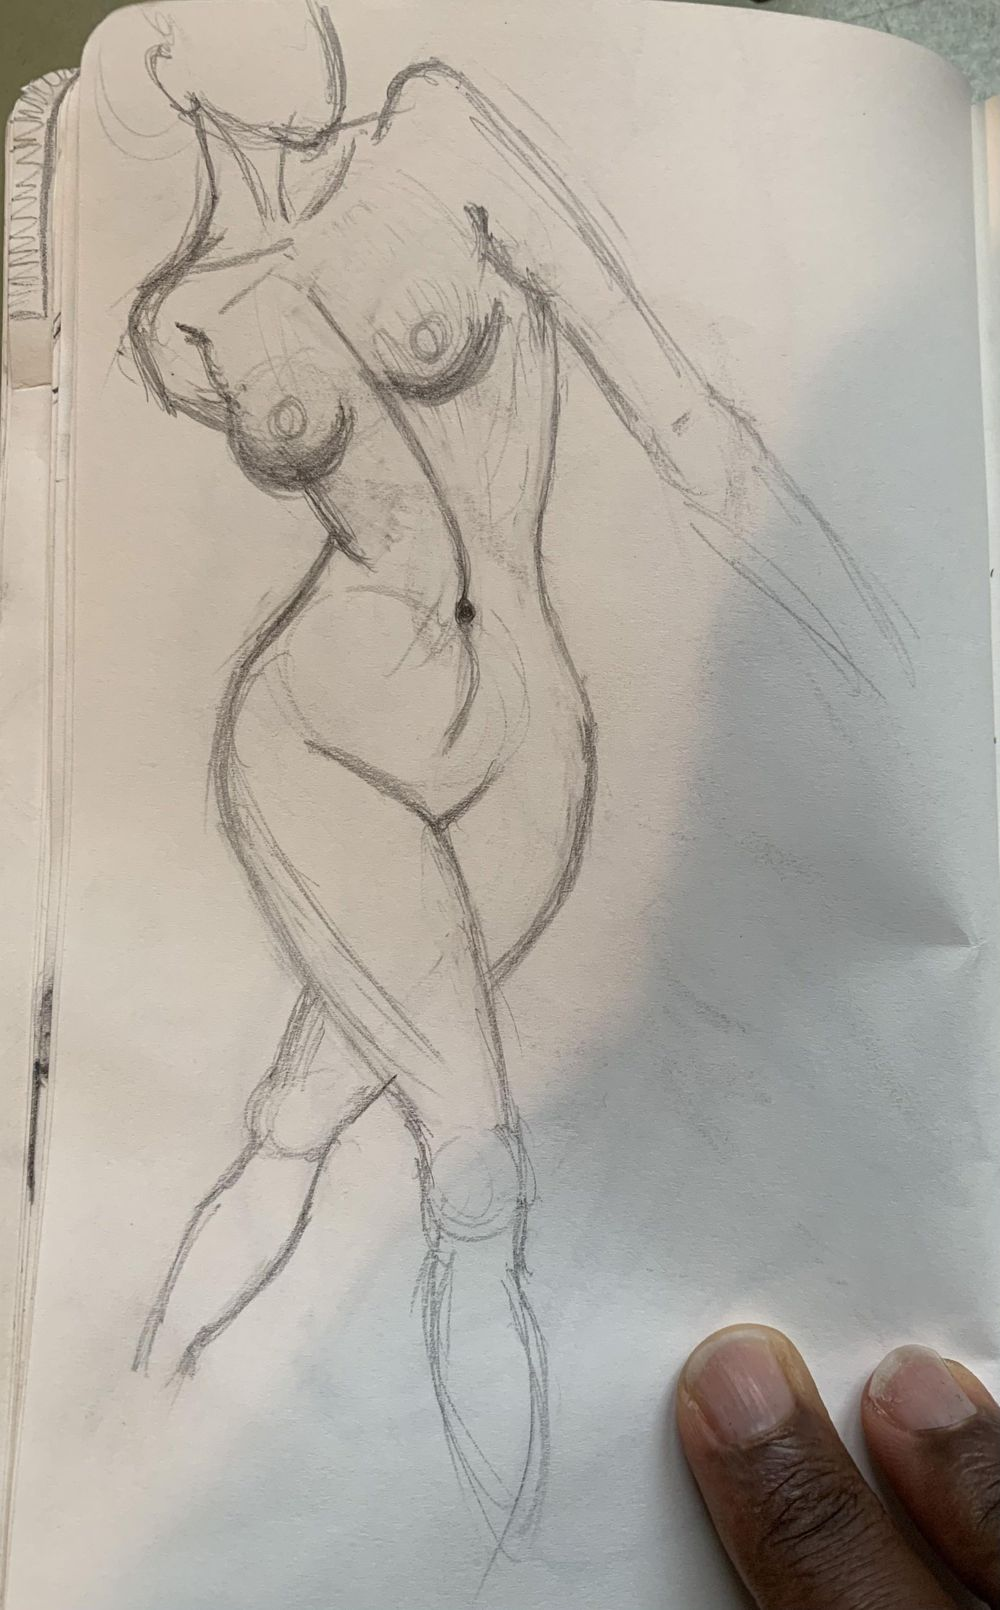 gesture - image 3 - student project